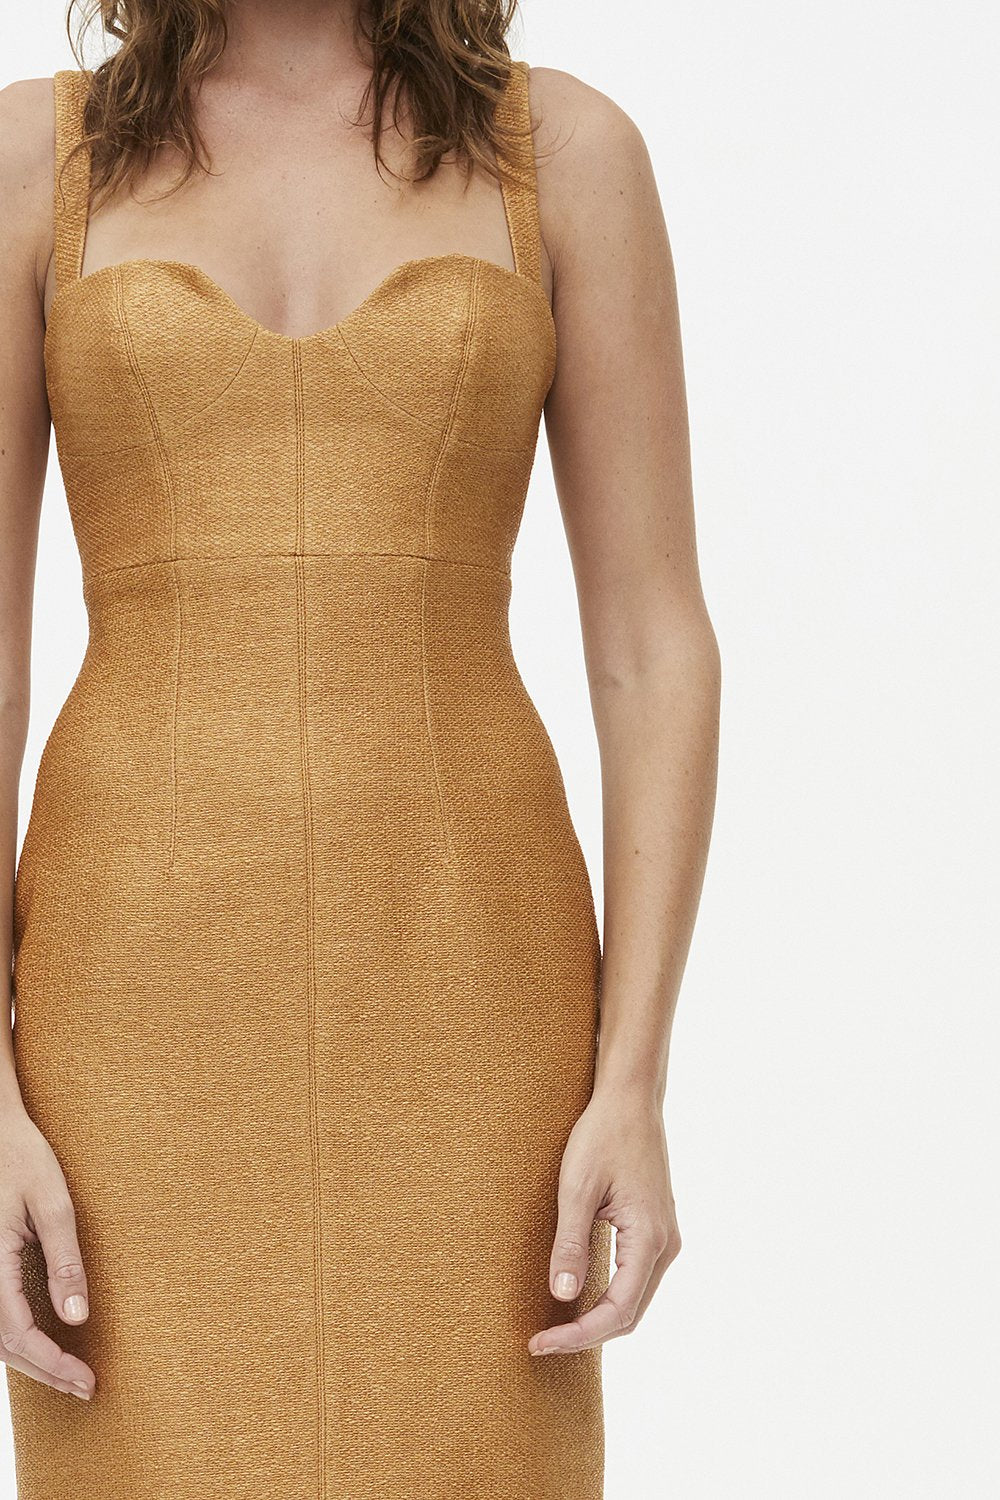 Manning Cartell Golden Ticket Dress